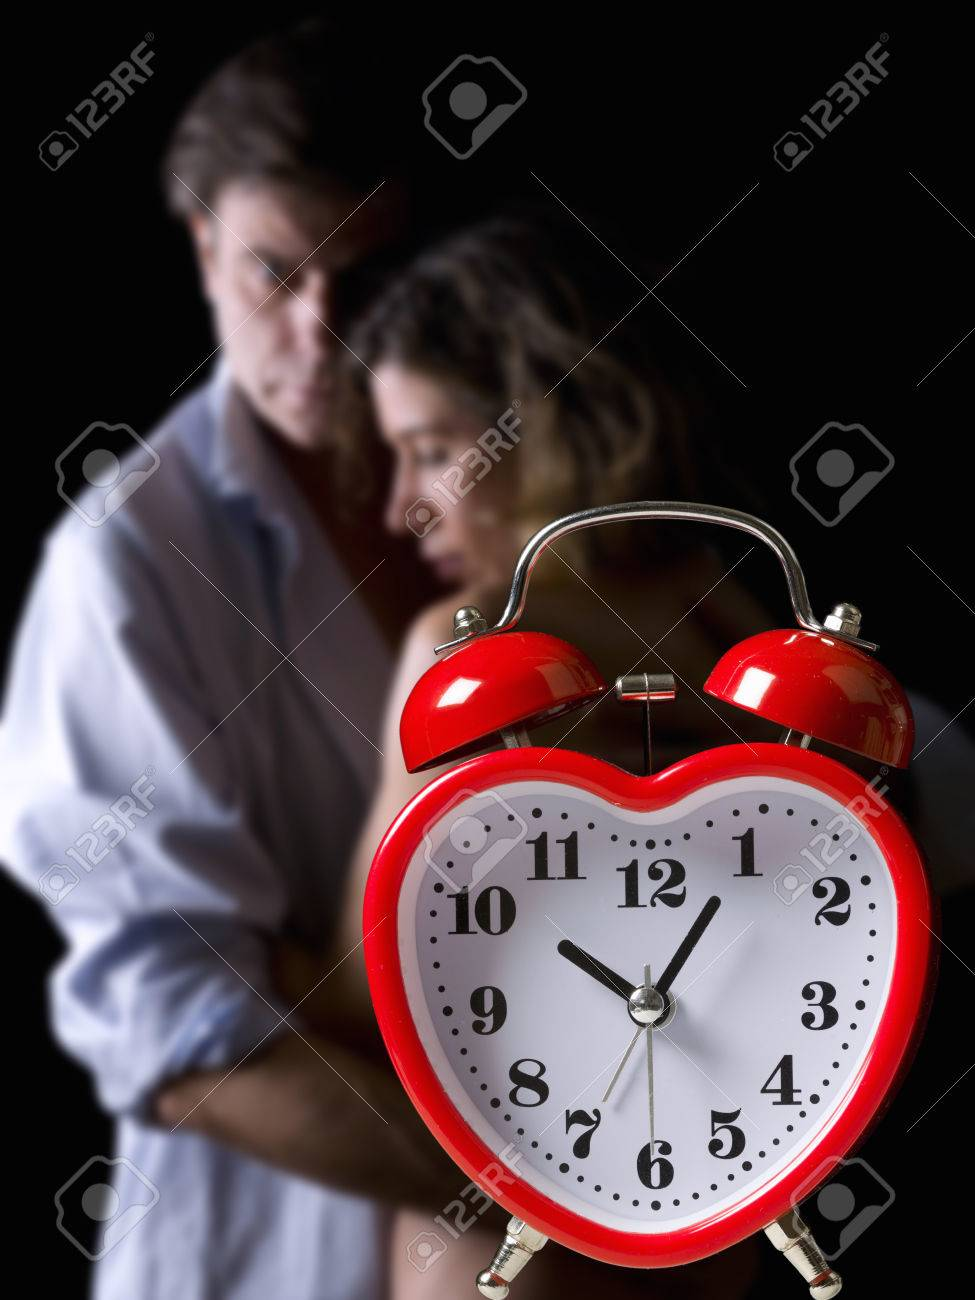 Clock and an embracing couple in the background - 38161380